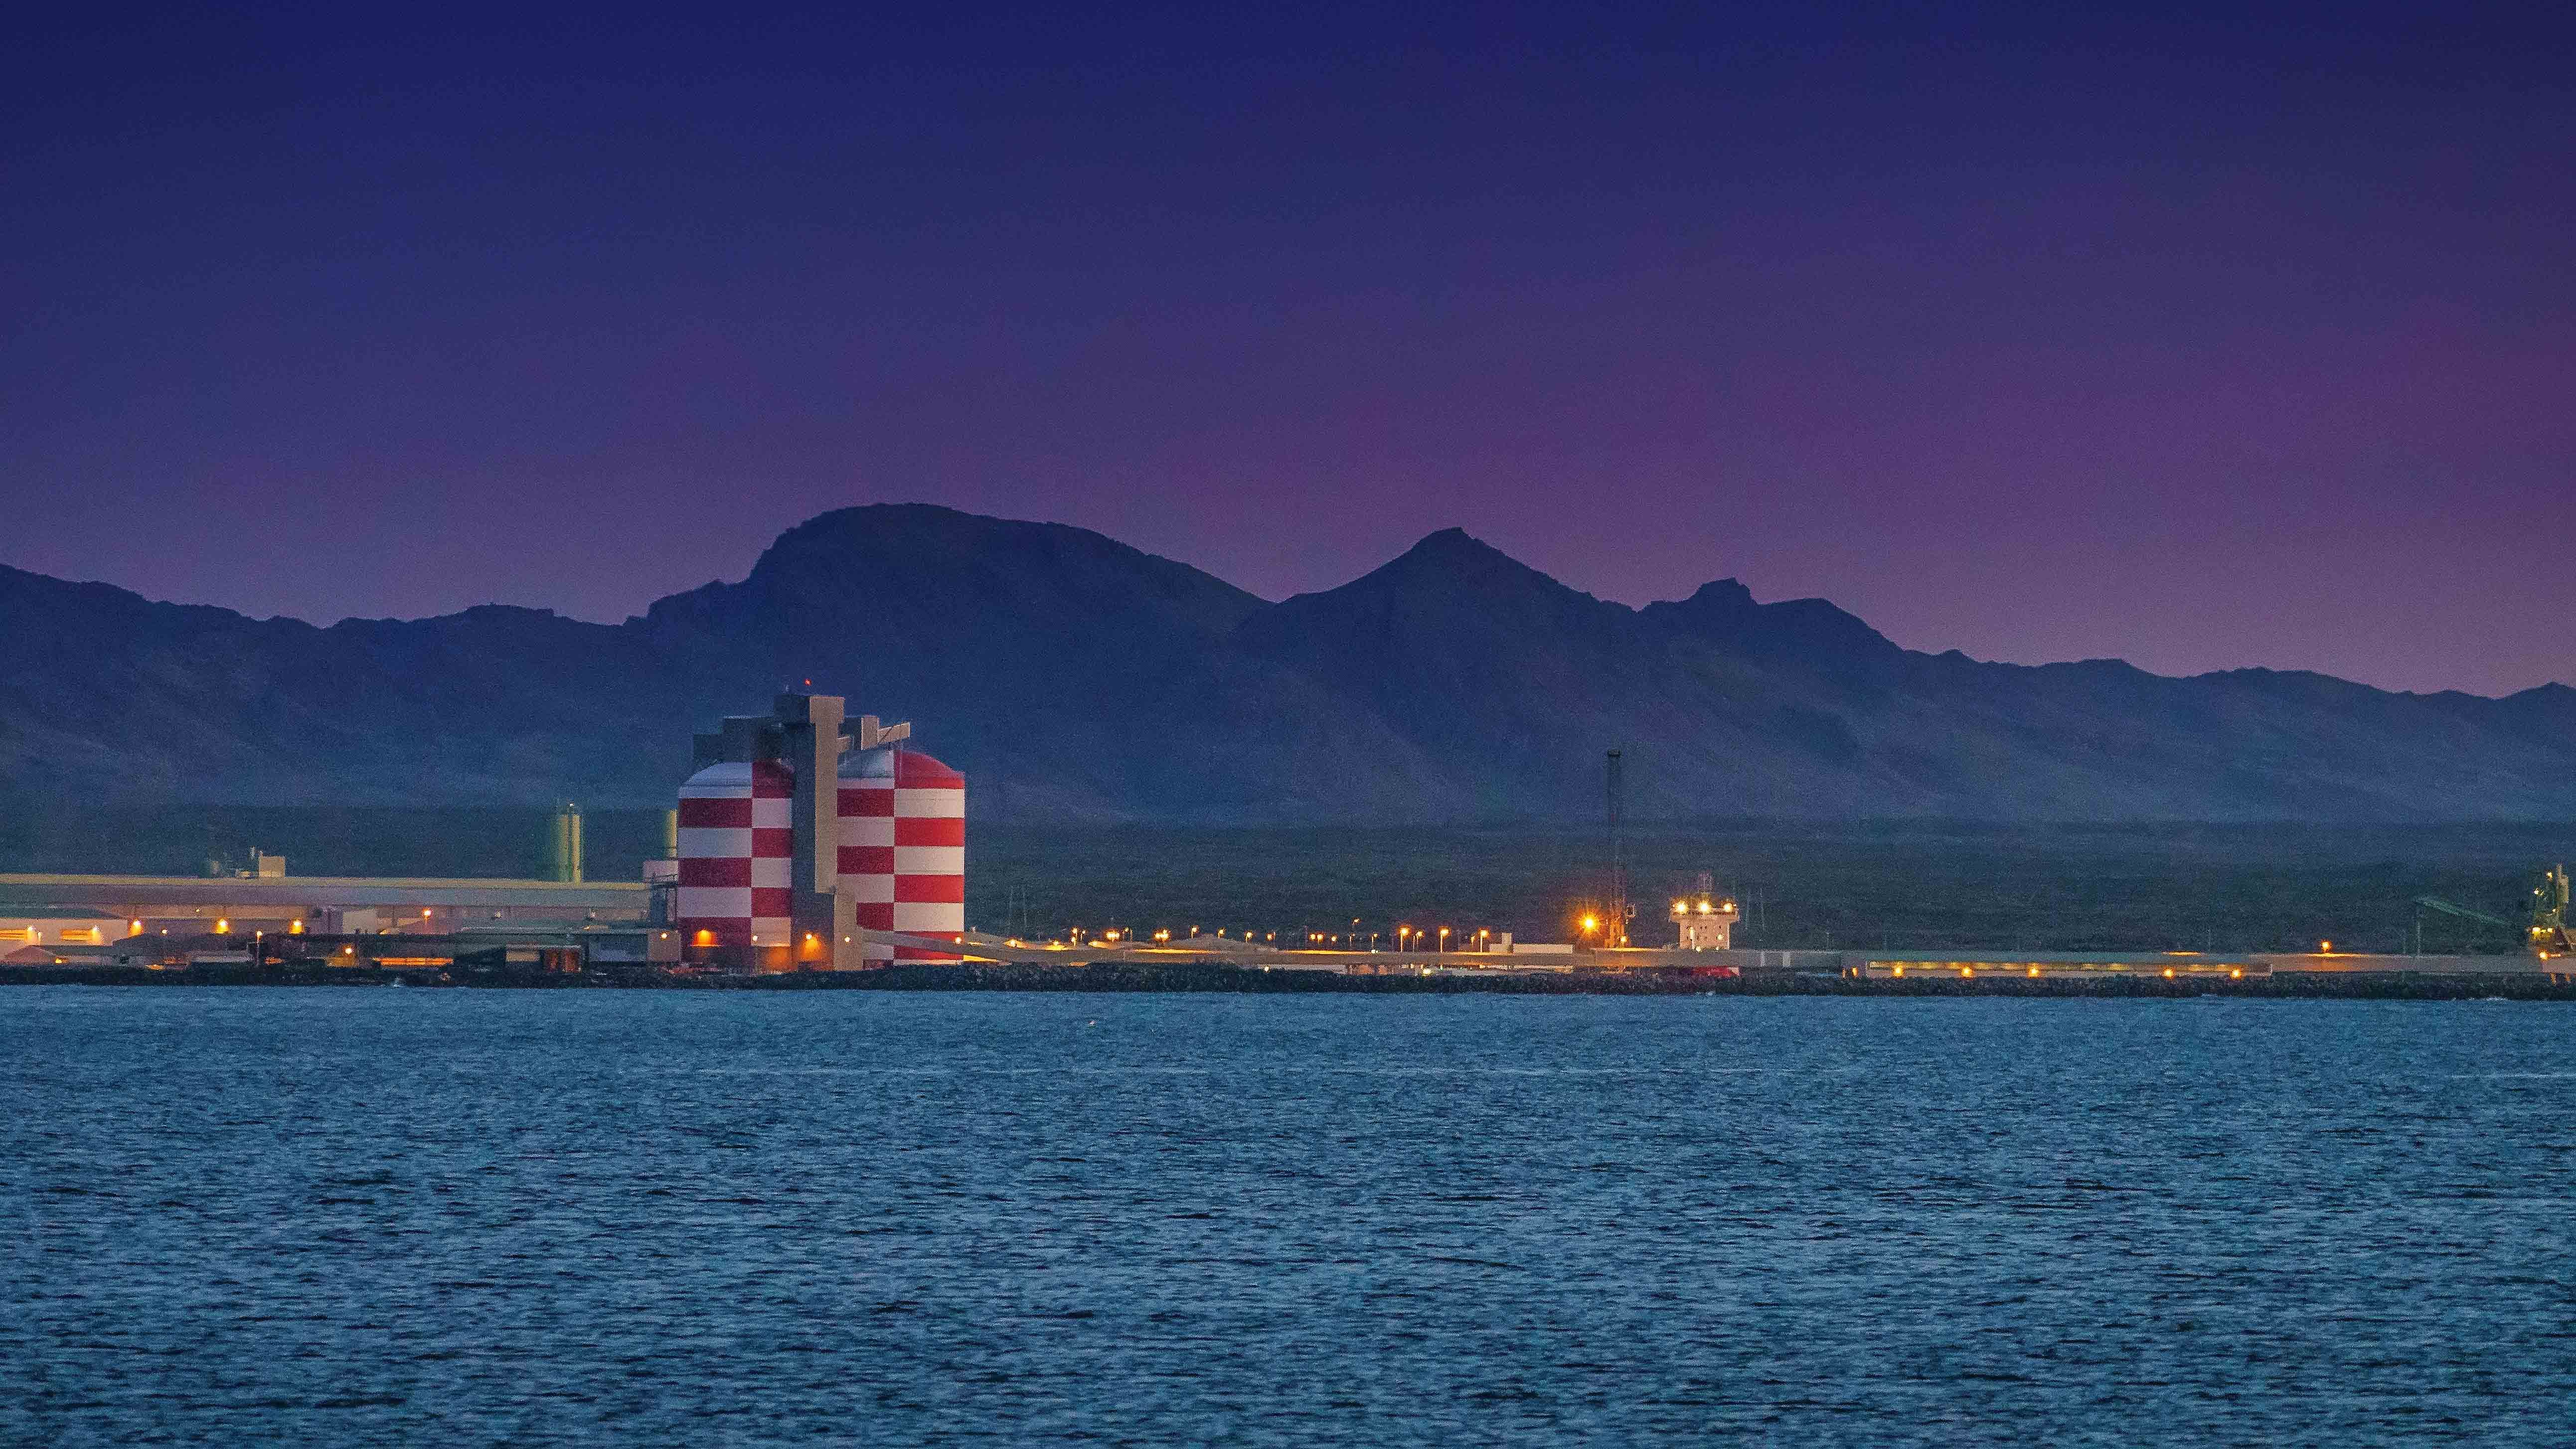 The red and white towers of the aluminium smelting facility at Straumsvík, Iceland are a local landmark (Credit: Alamy)